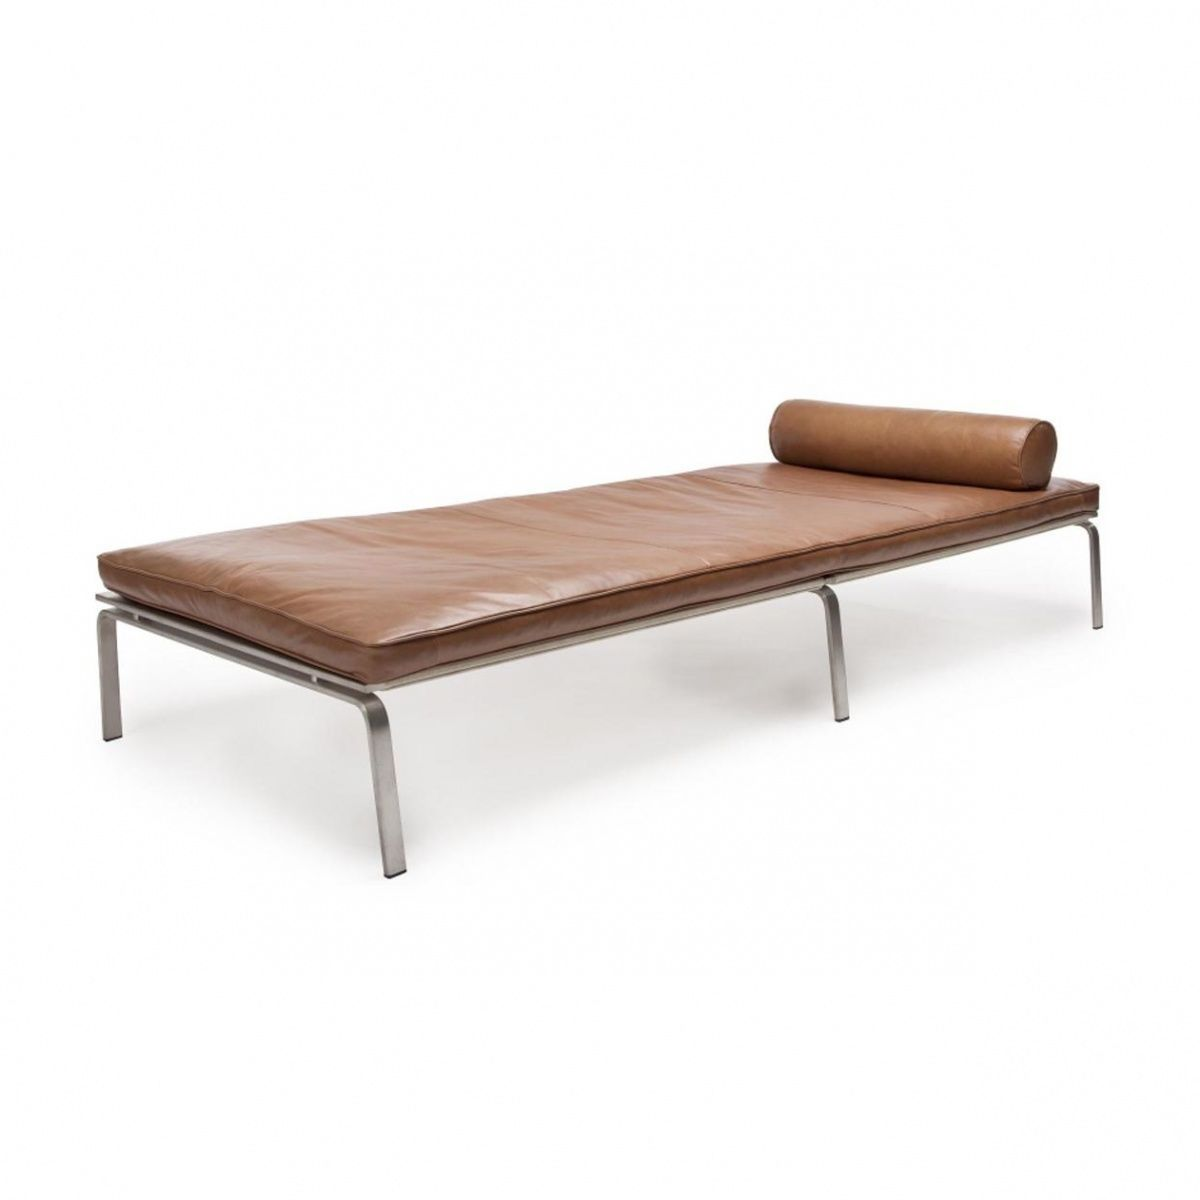 Liege Leder Braun Man Lounge Daybed In 2019 7 Essex Day Bed Furniture Leather